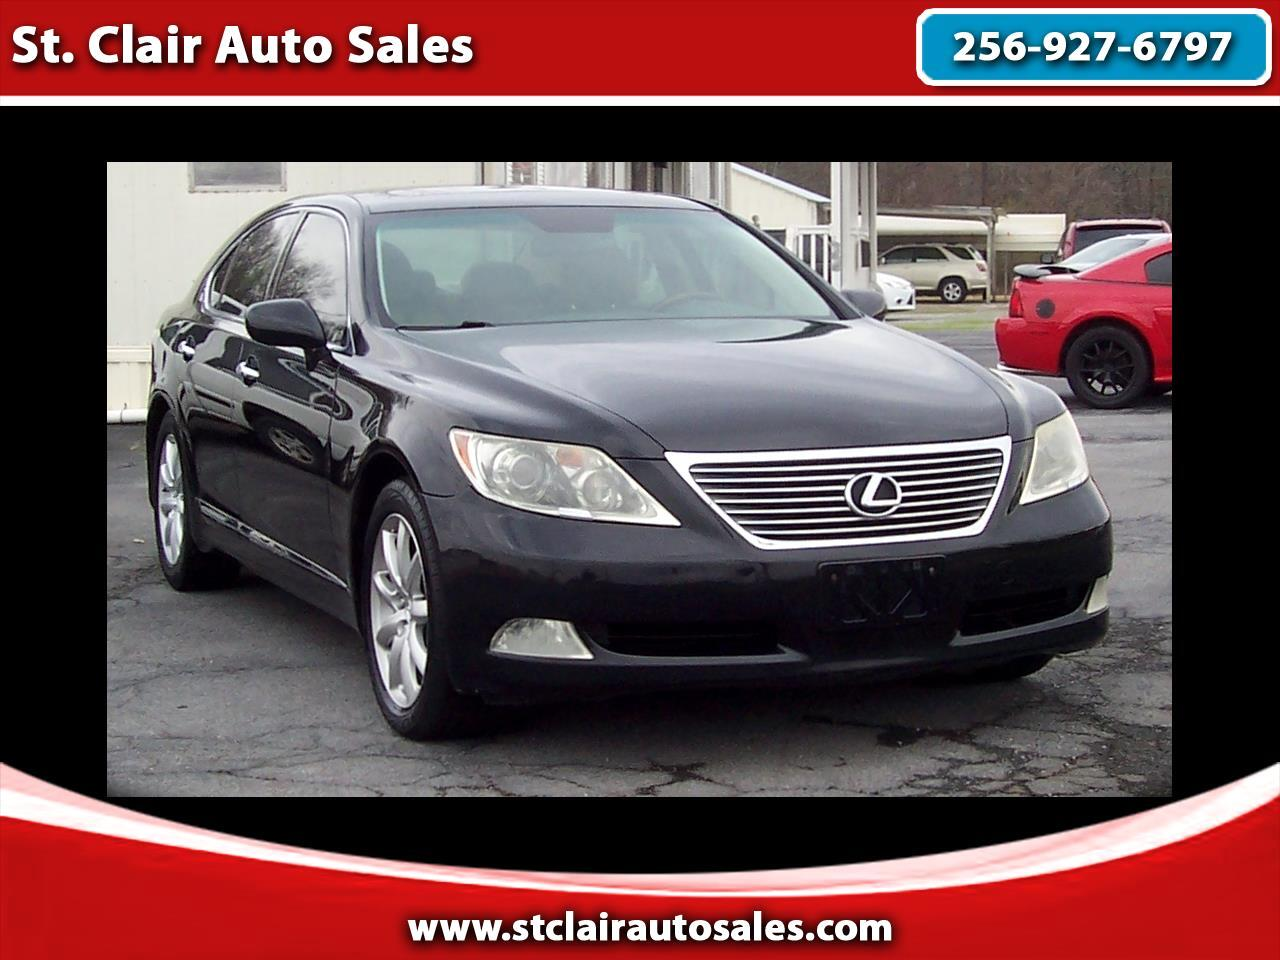 Lexus LS 460 Luxury Sedan 2009